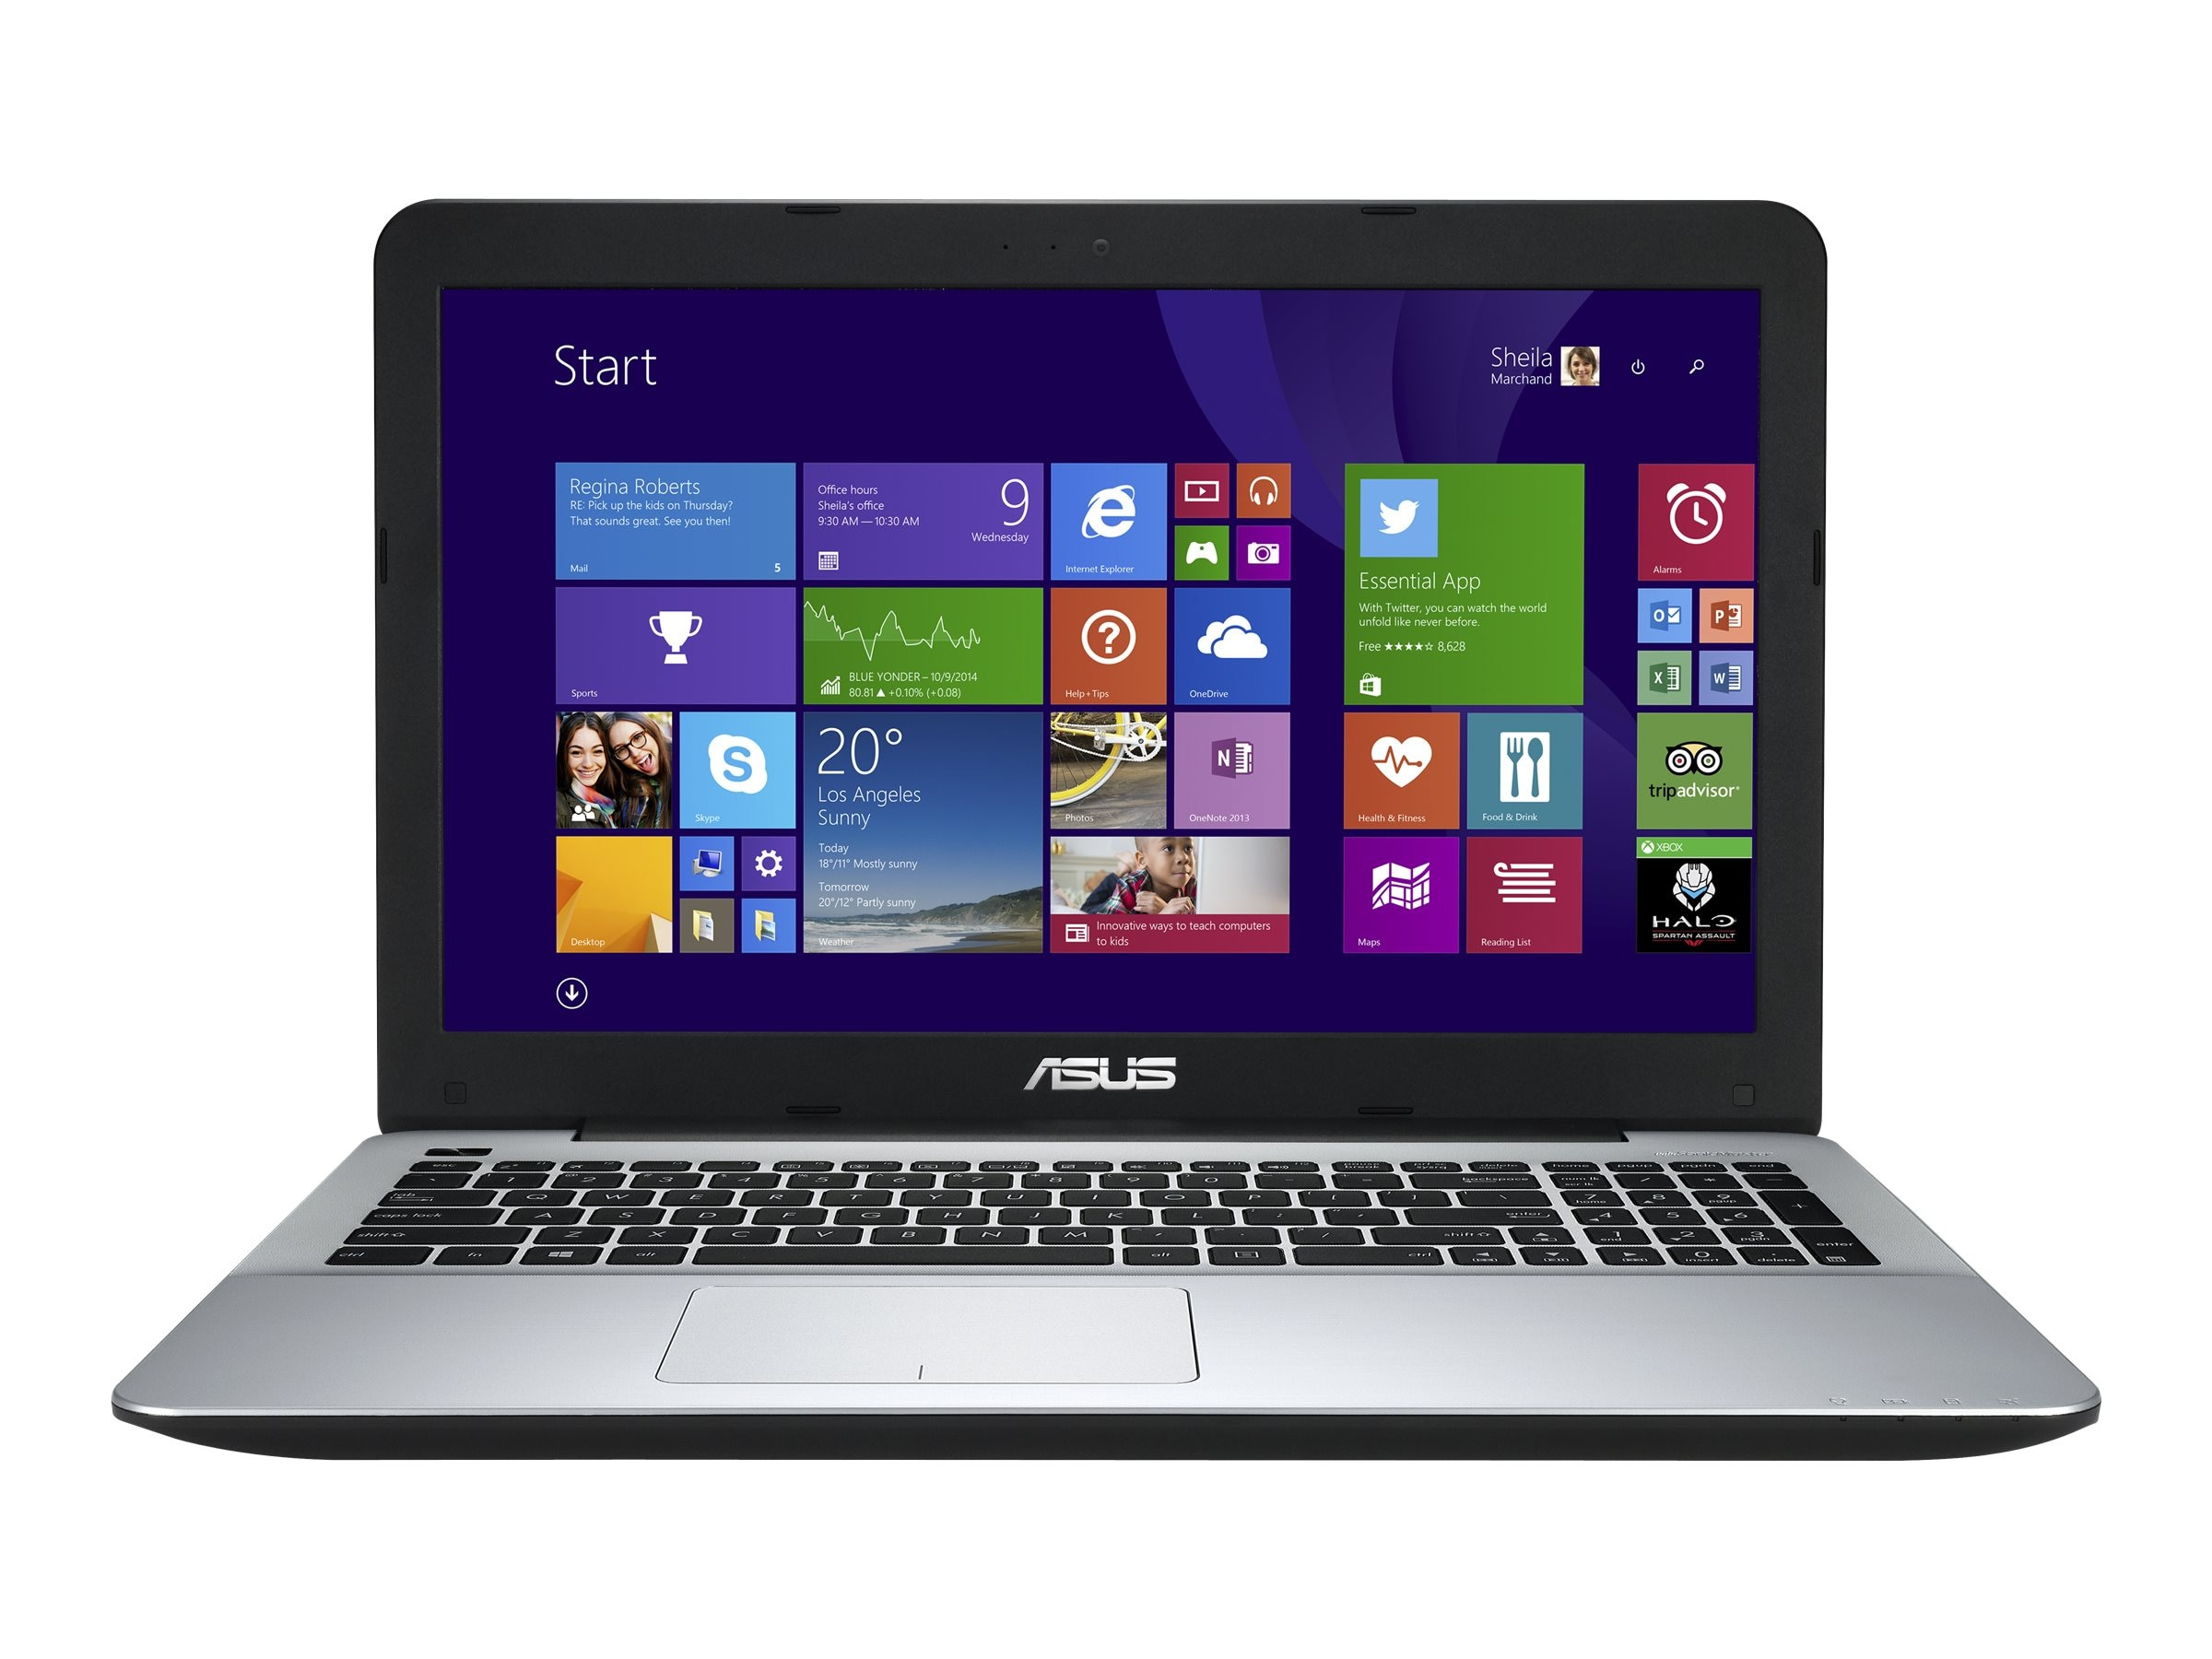 Asus F555LA-EH51 Core i5-5200U 2.2GHz 8GB 1TB DVD-RW ac BT WC 2C 15.6 HD W10H64, F555LA-EH51